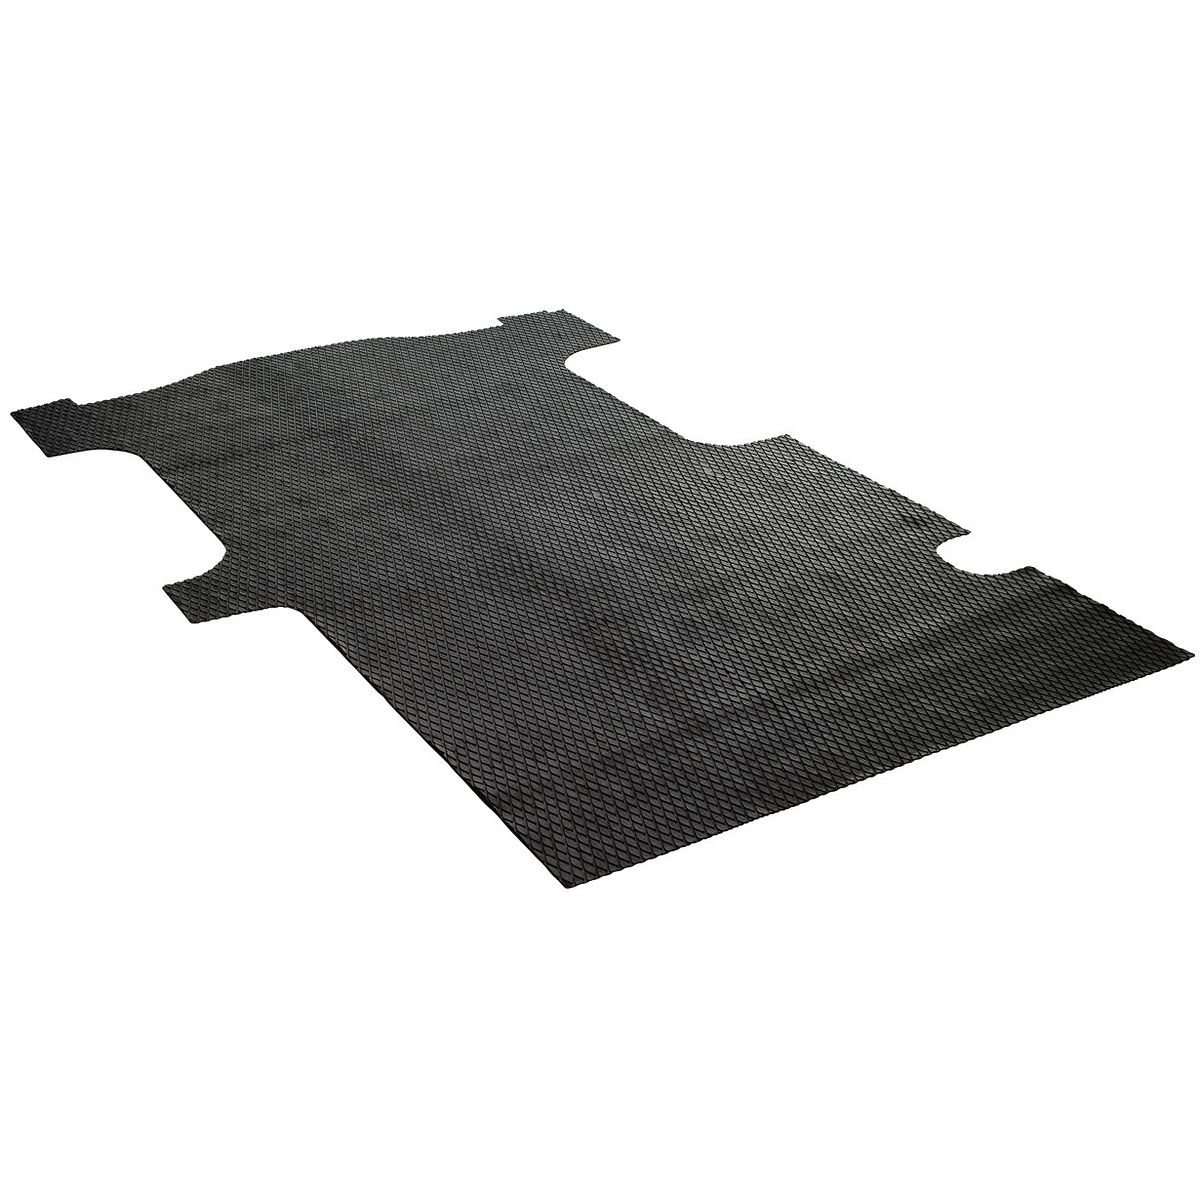 hight resolution of van floor mats are designed to fit the specific van bed and wheel base